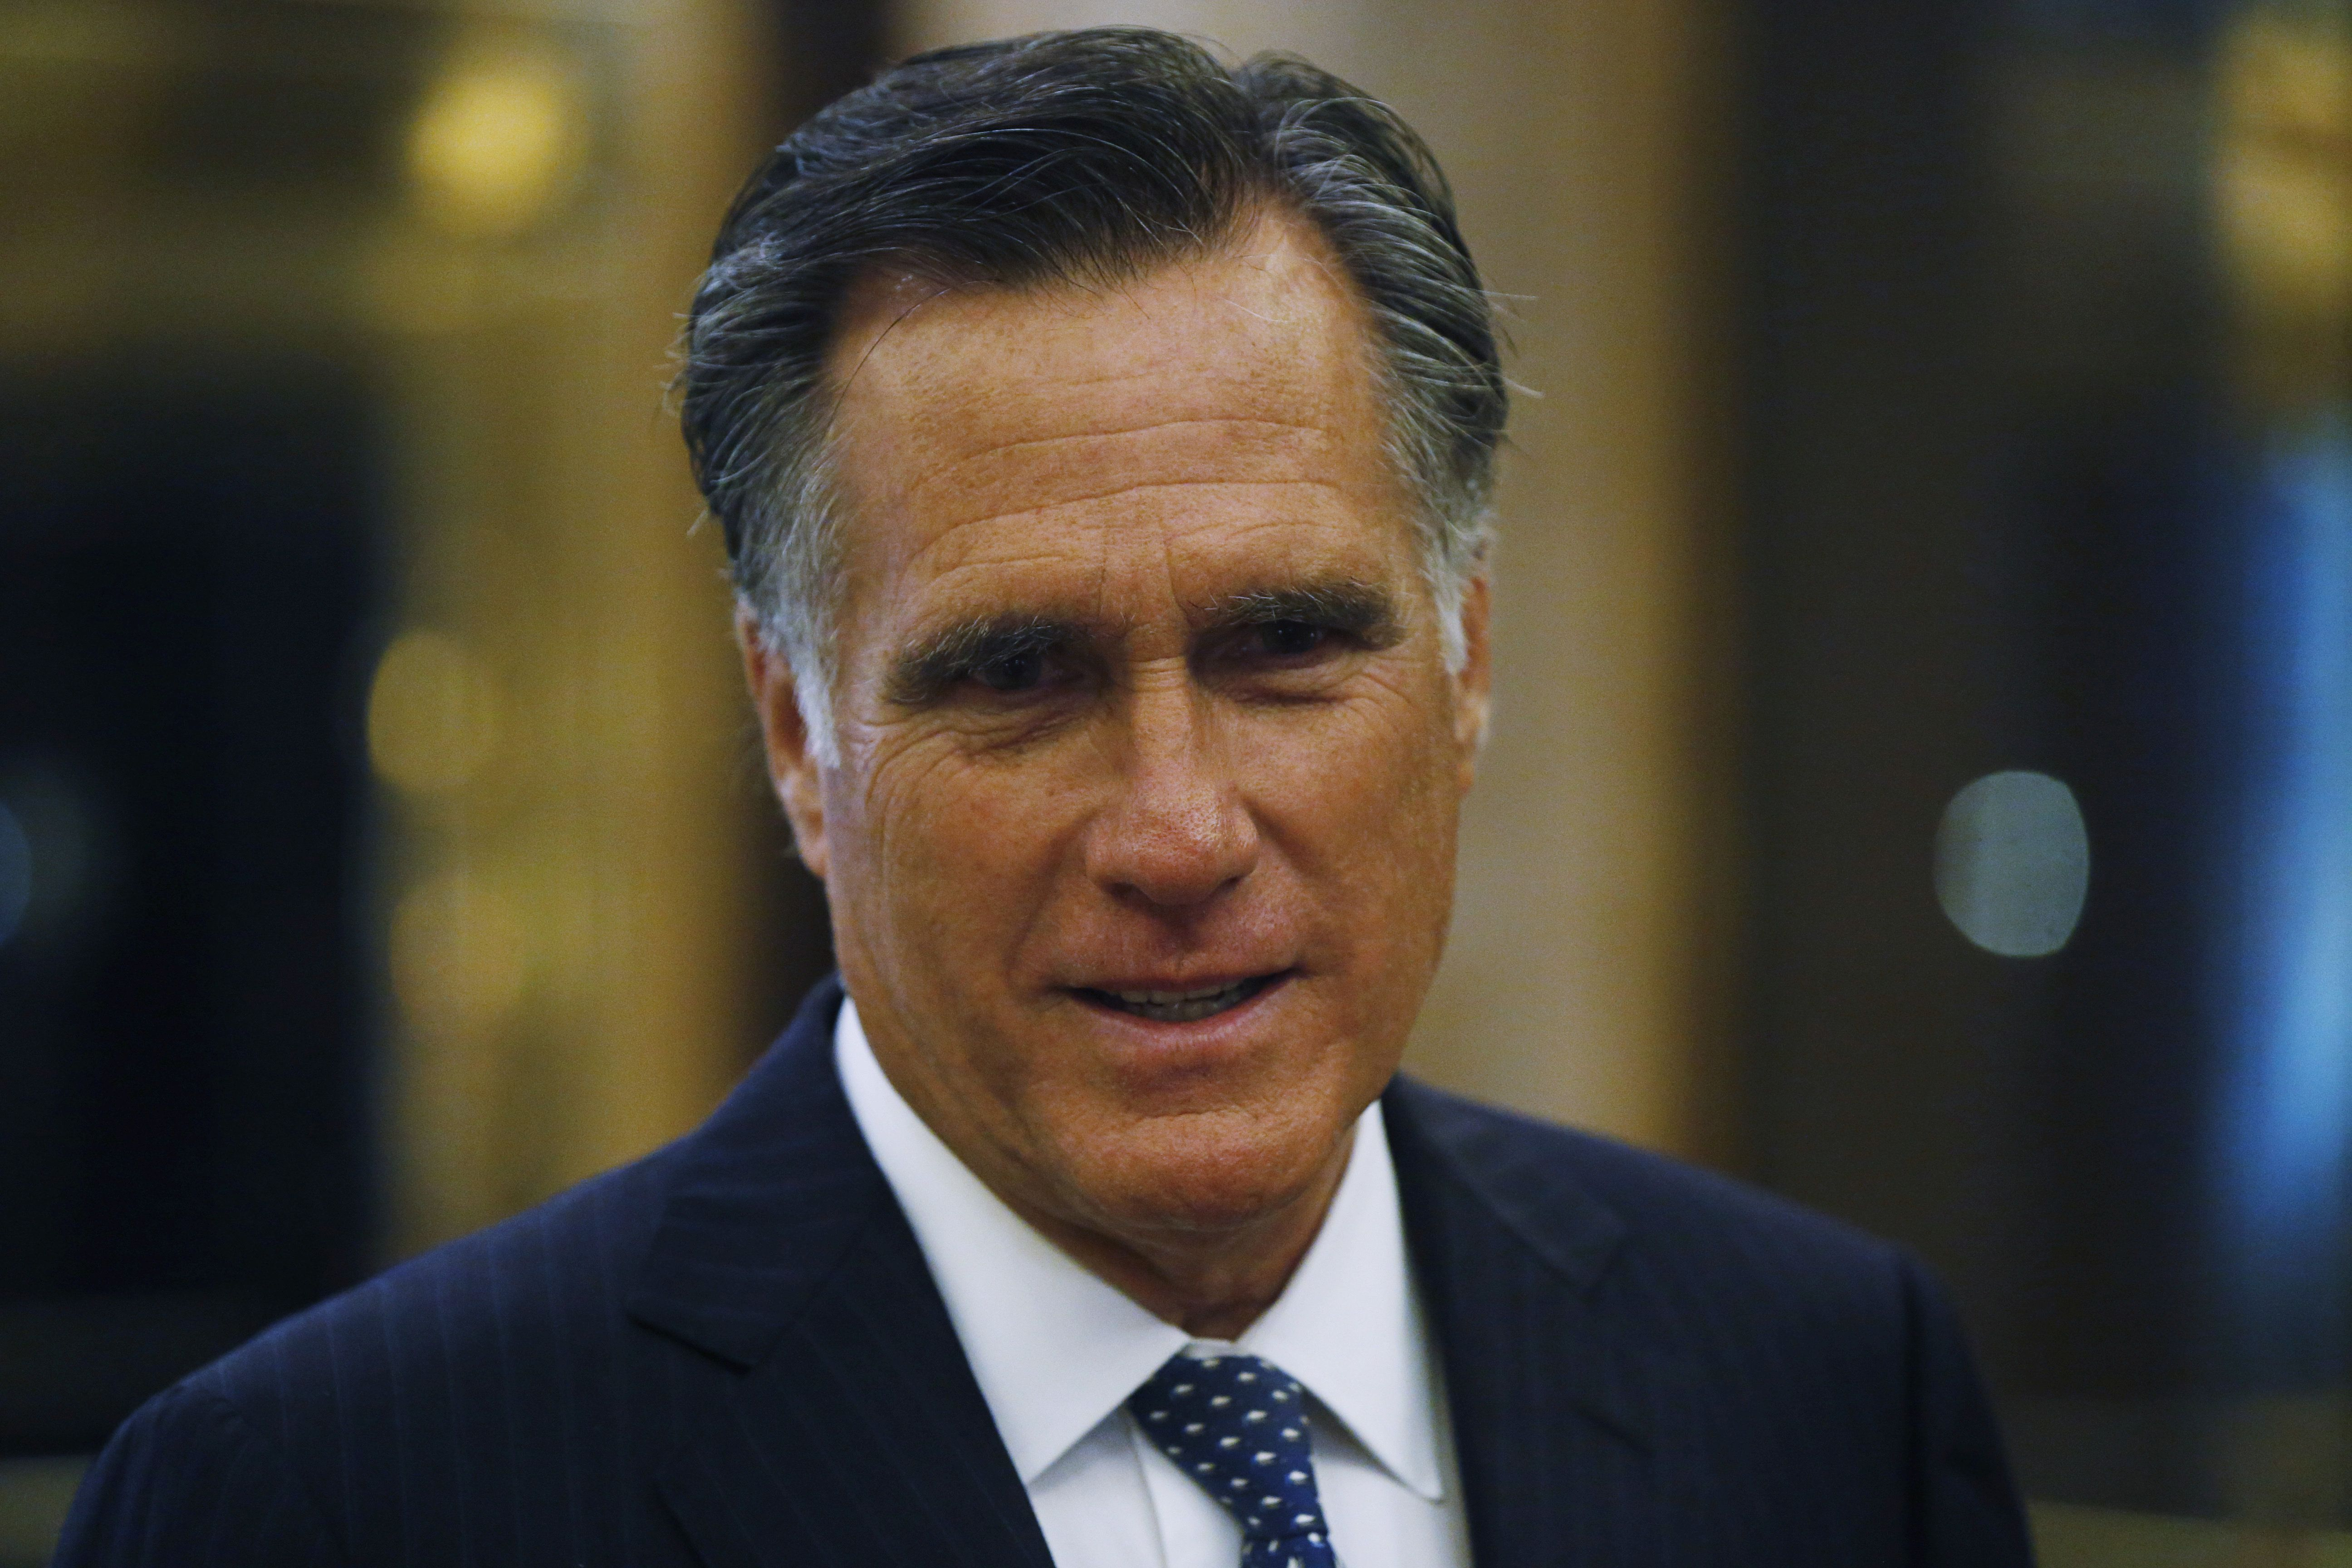 Mitt Romney: Trump's 'Shithole' Comments 'Antithetical To American Values'